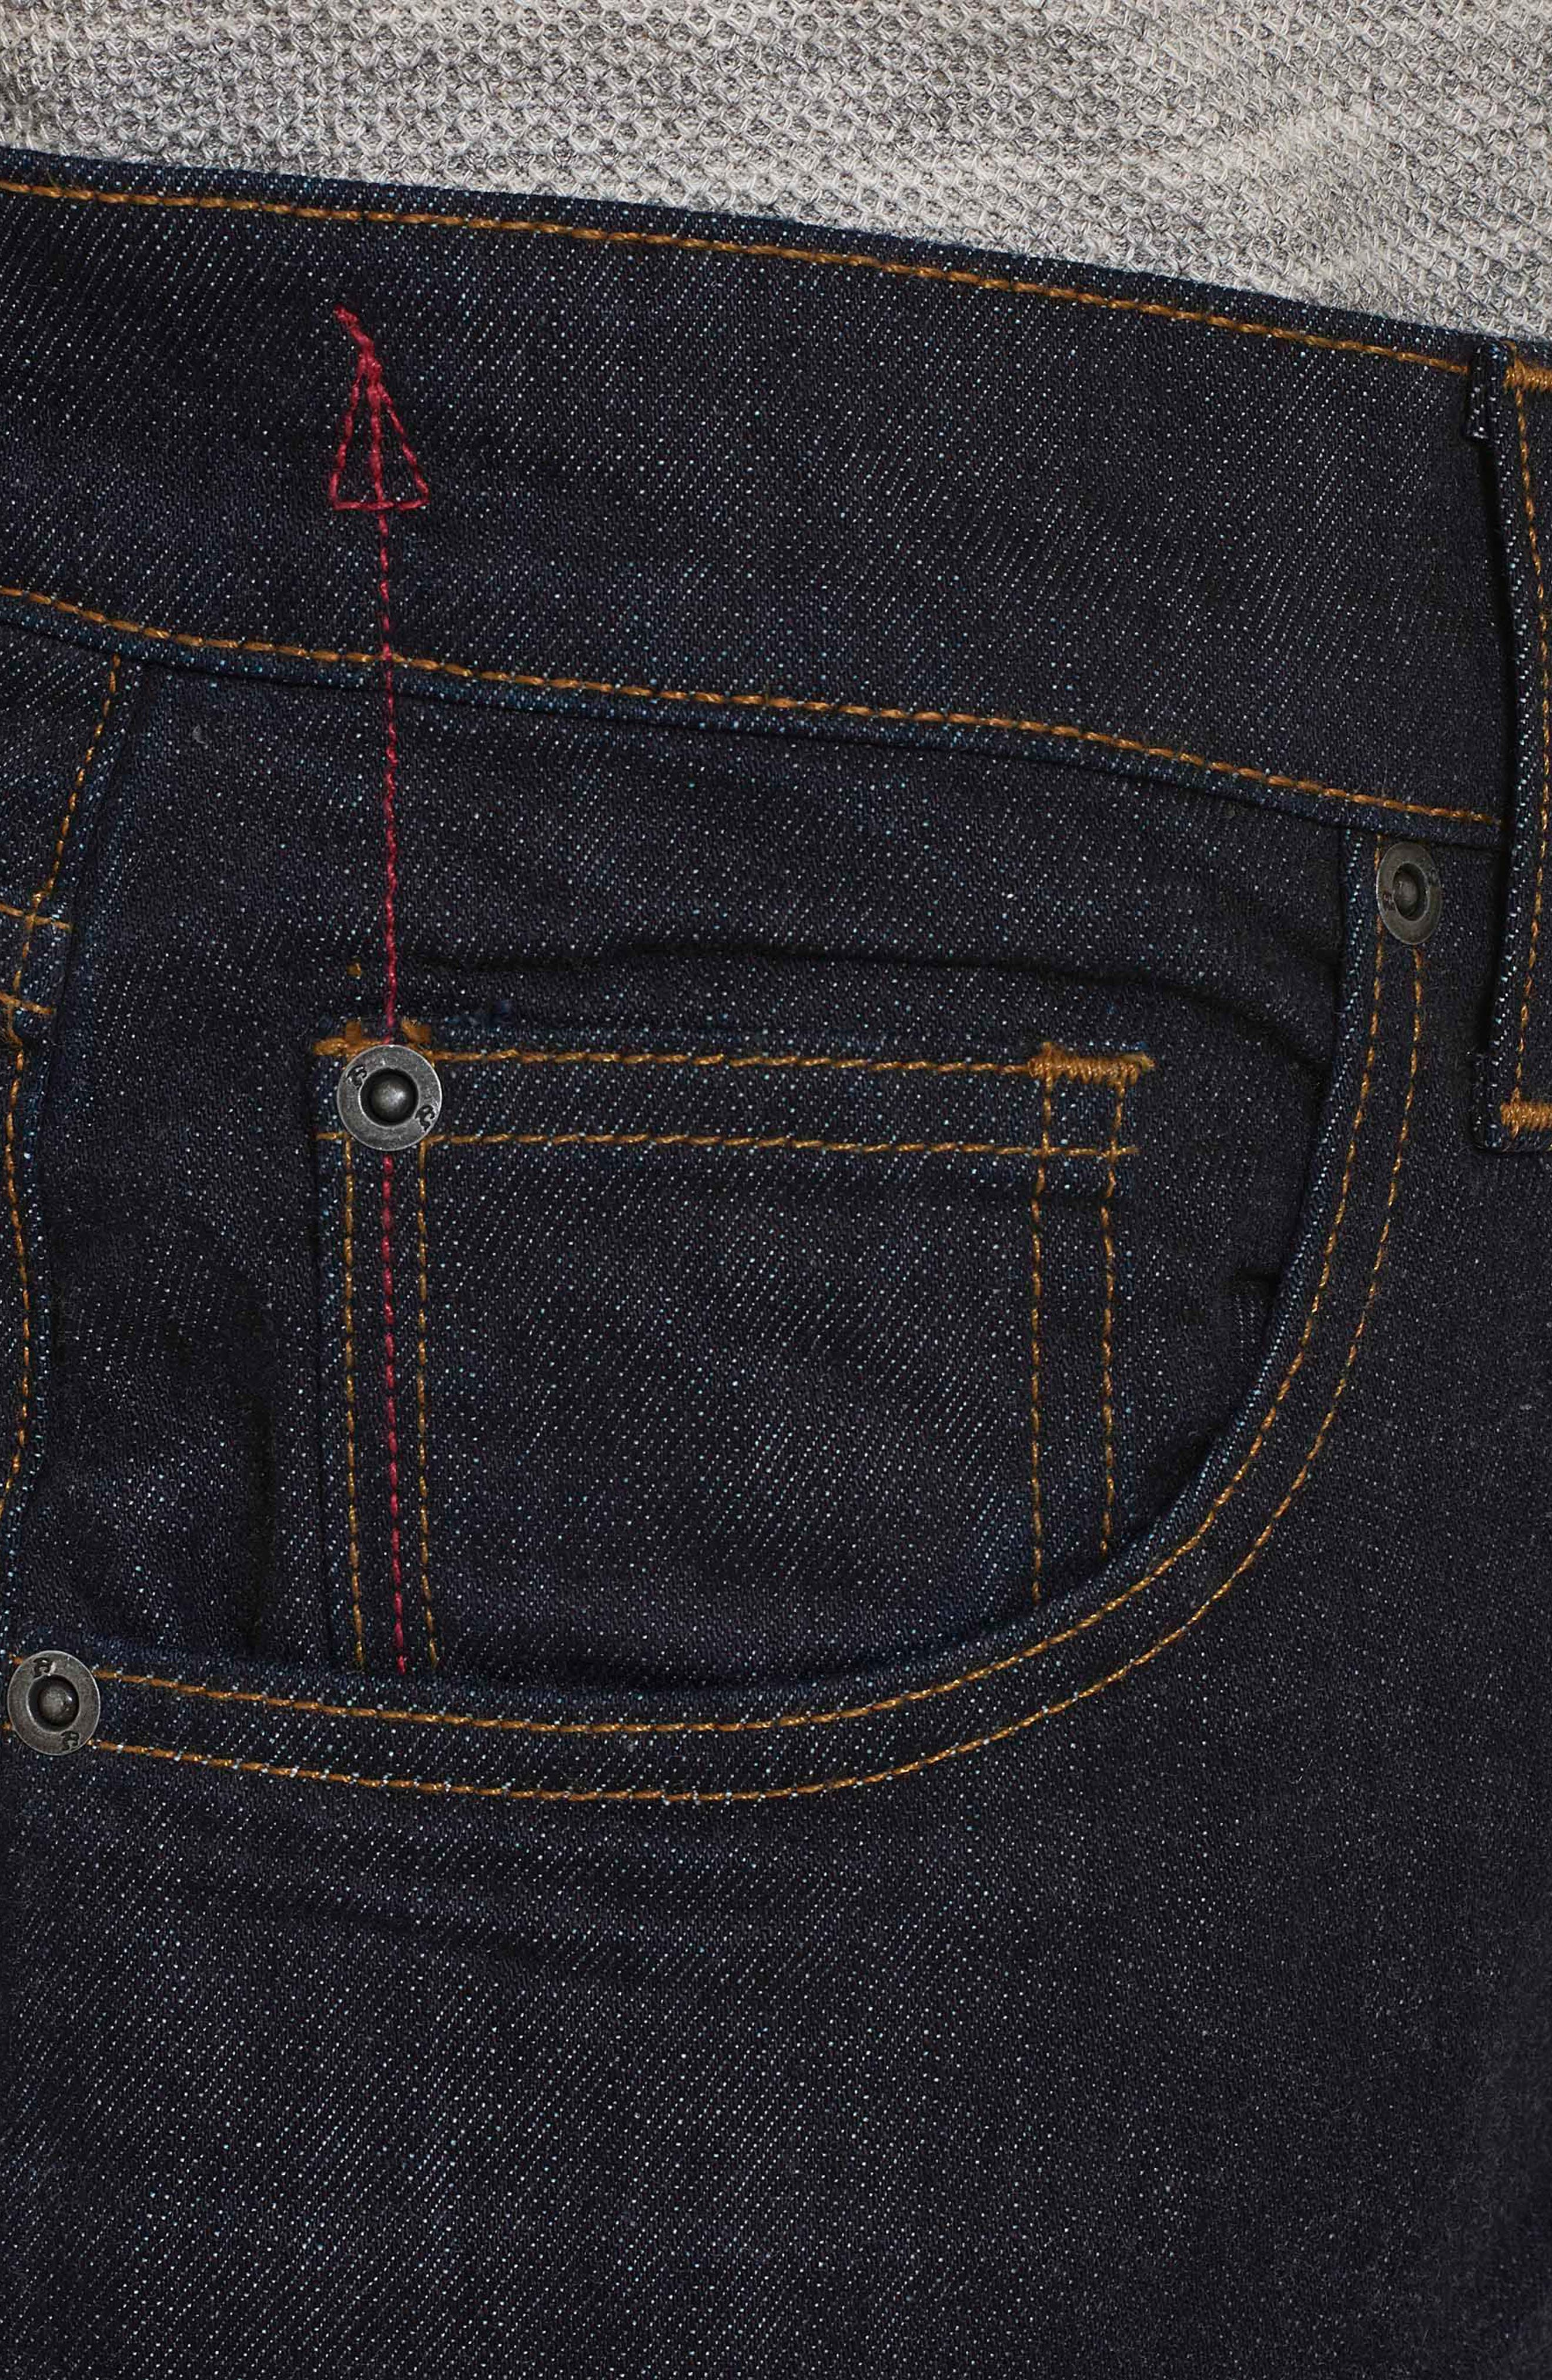 Resist Tailored Fit Jeans,                             Alternate thumbnail 4, color,                             405